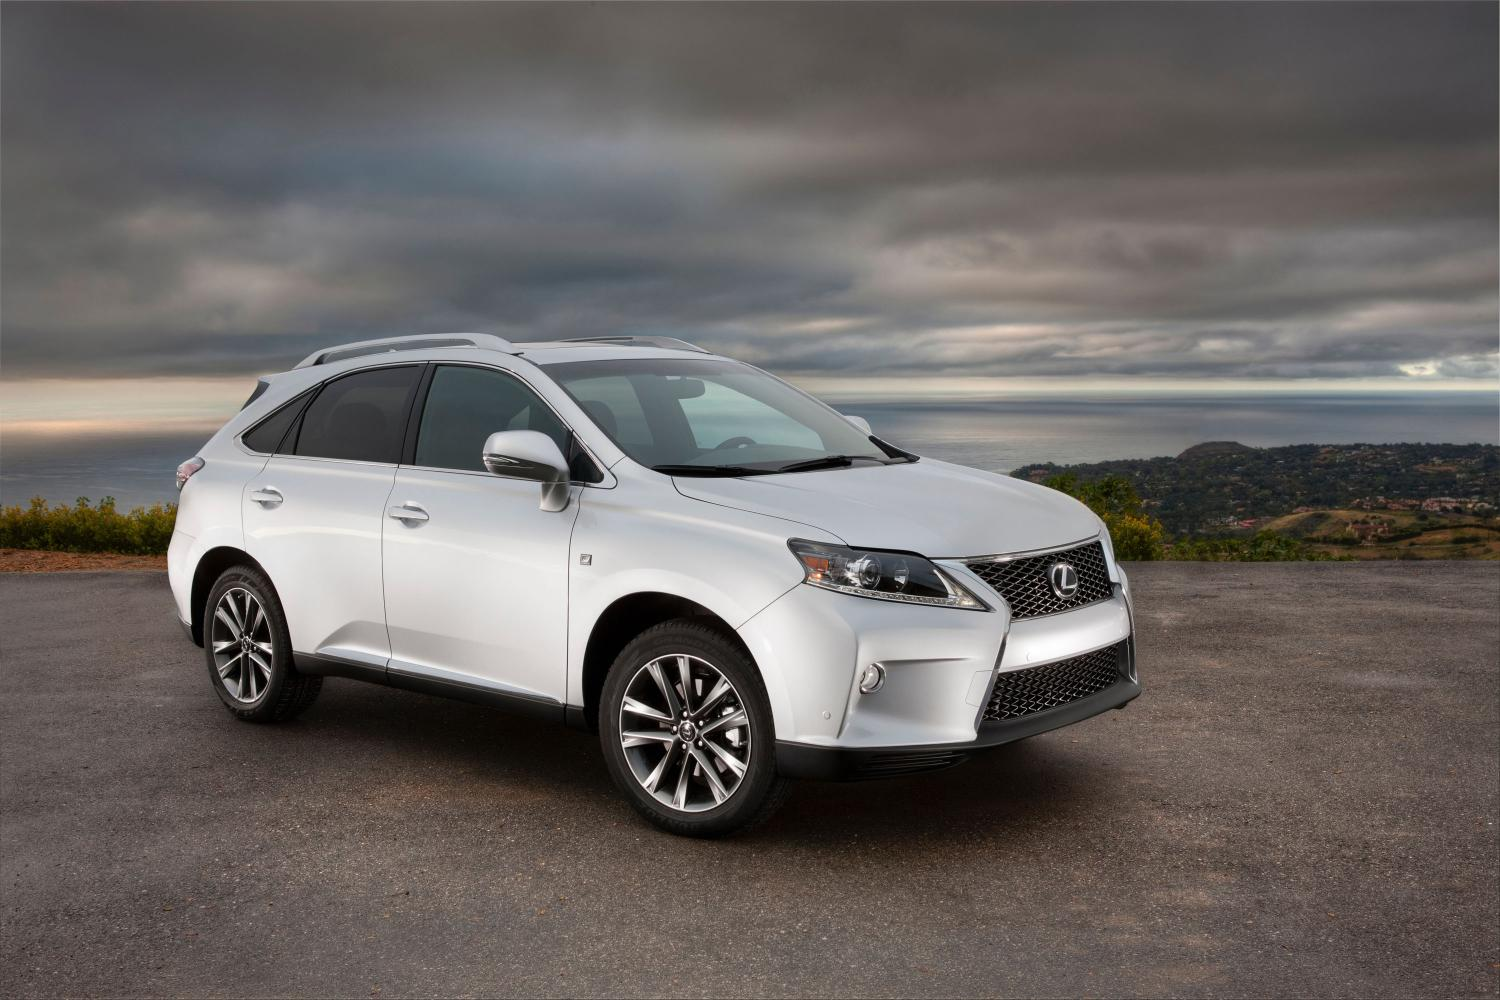 lexus prices 2014 rx lineup in the us autoevolution. Black Bedroom Furniture Sets. Home Design Ideas